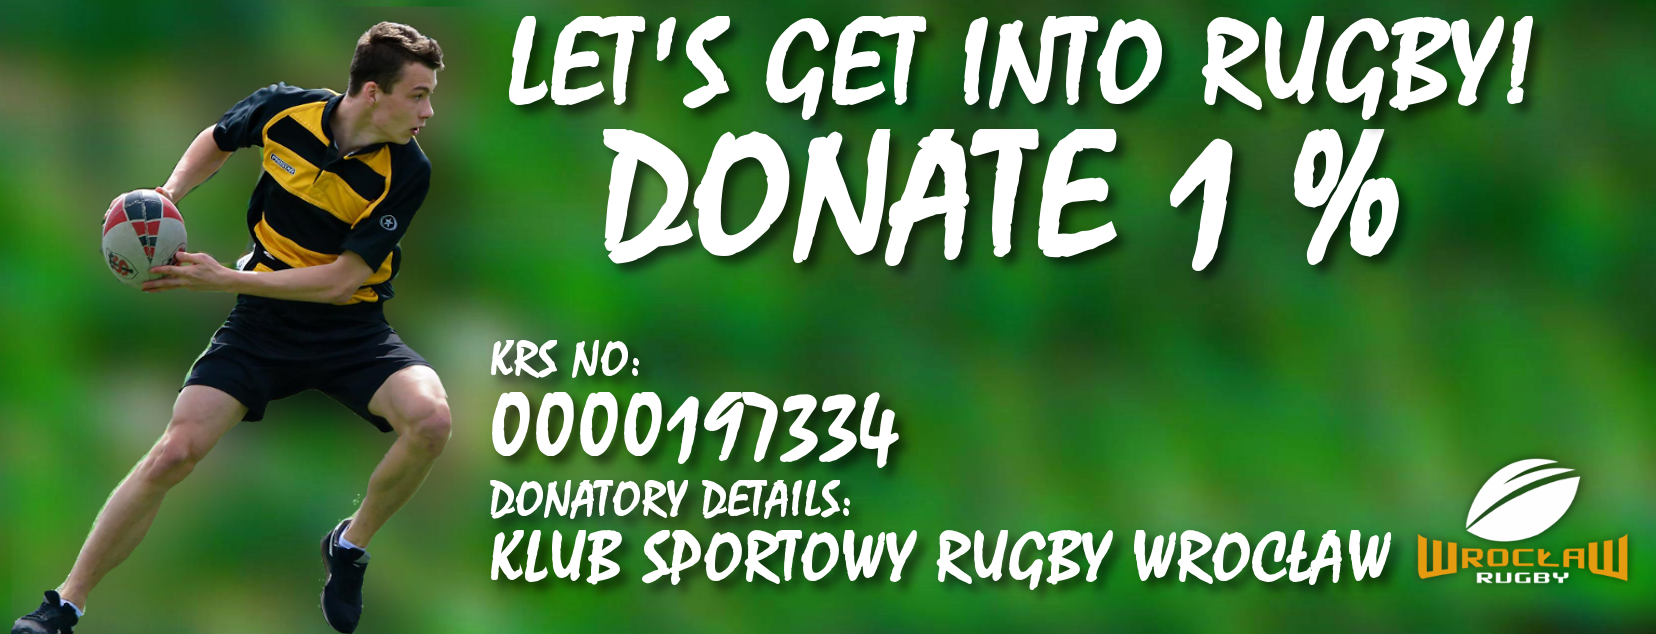 Help us getting into rugby! Please donate 1%!